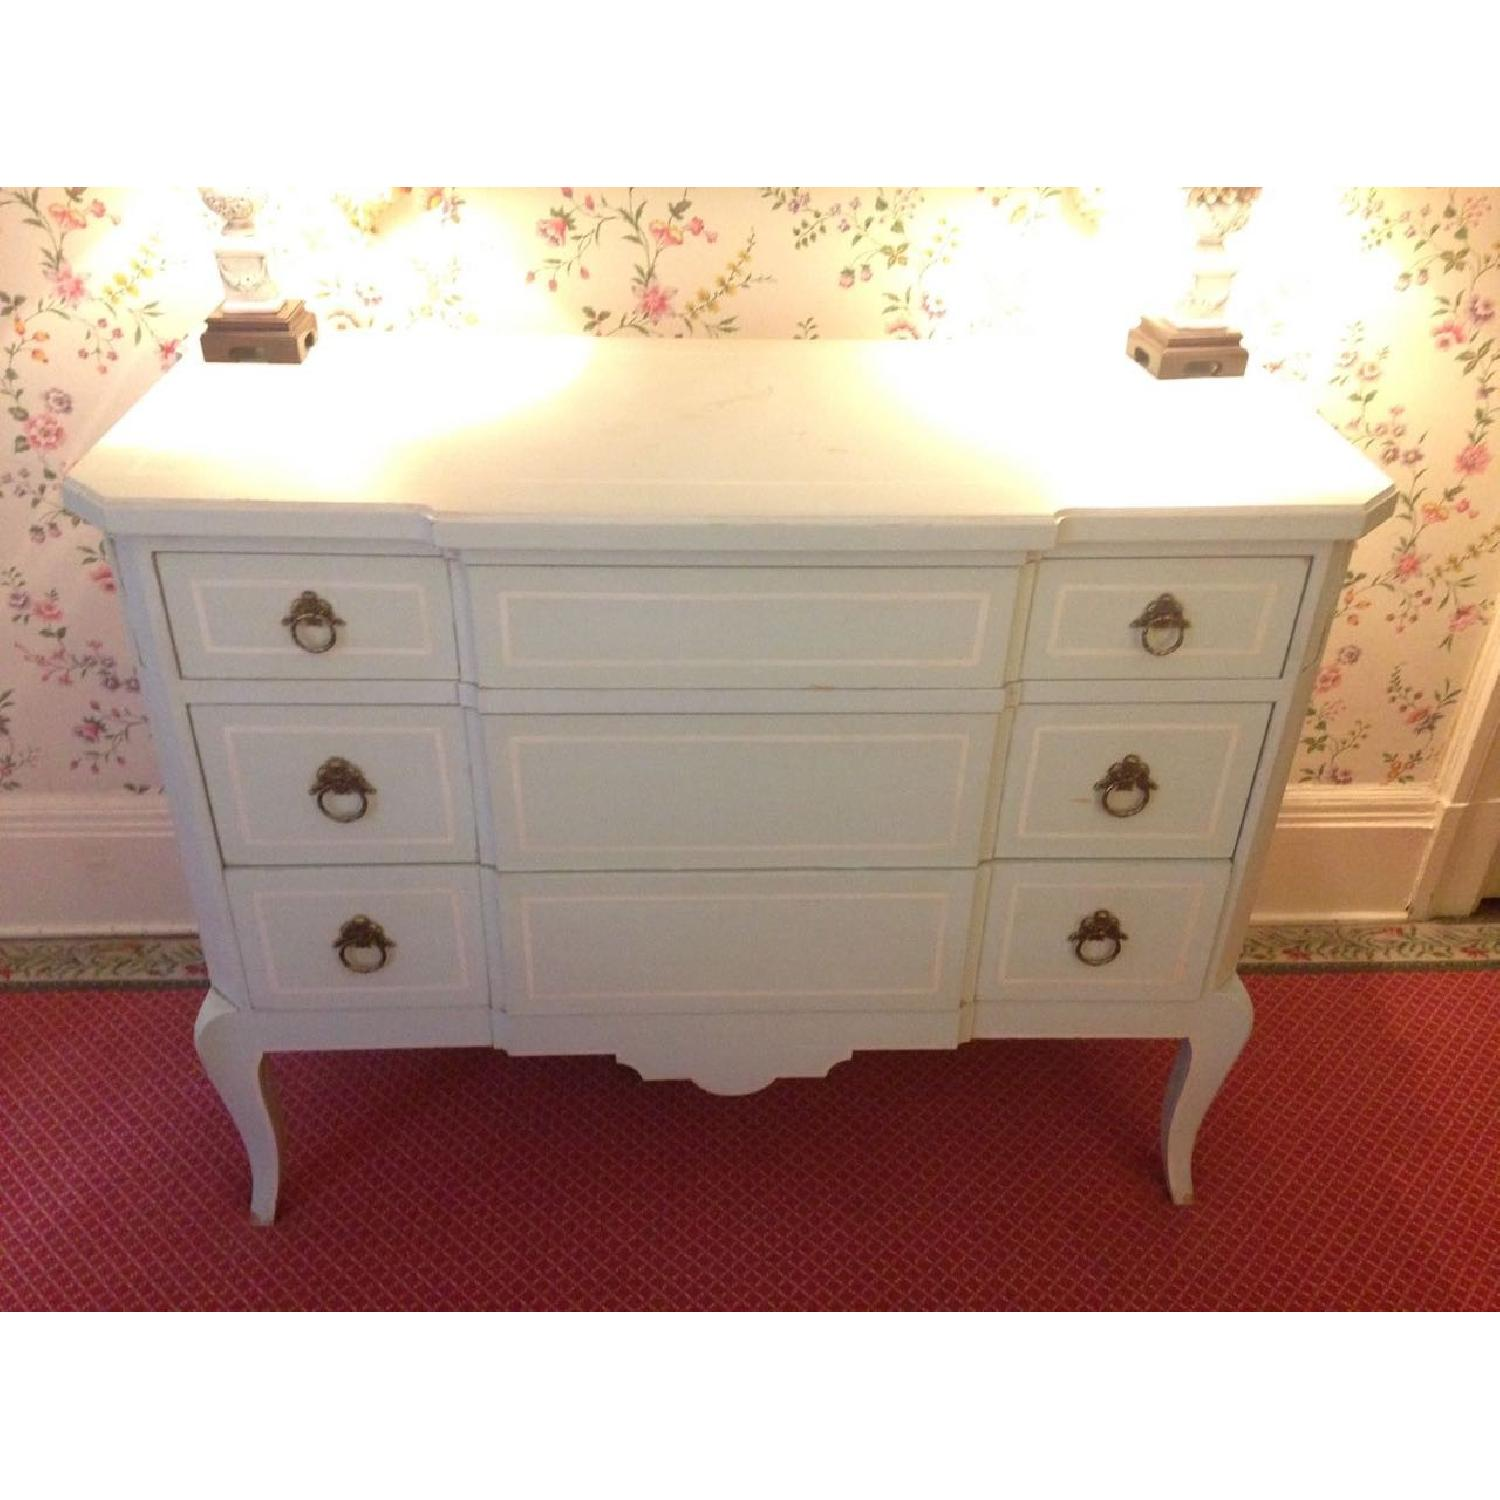 Julia Gray French Dresser w/ Blue Accents - image-17